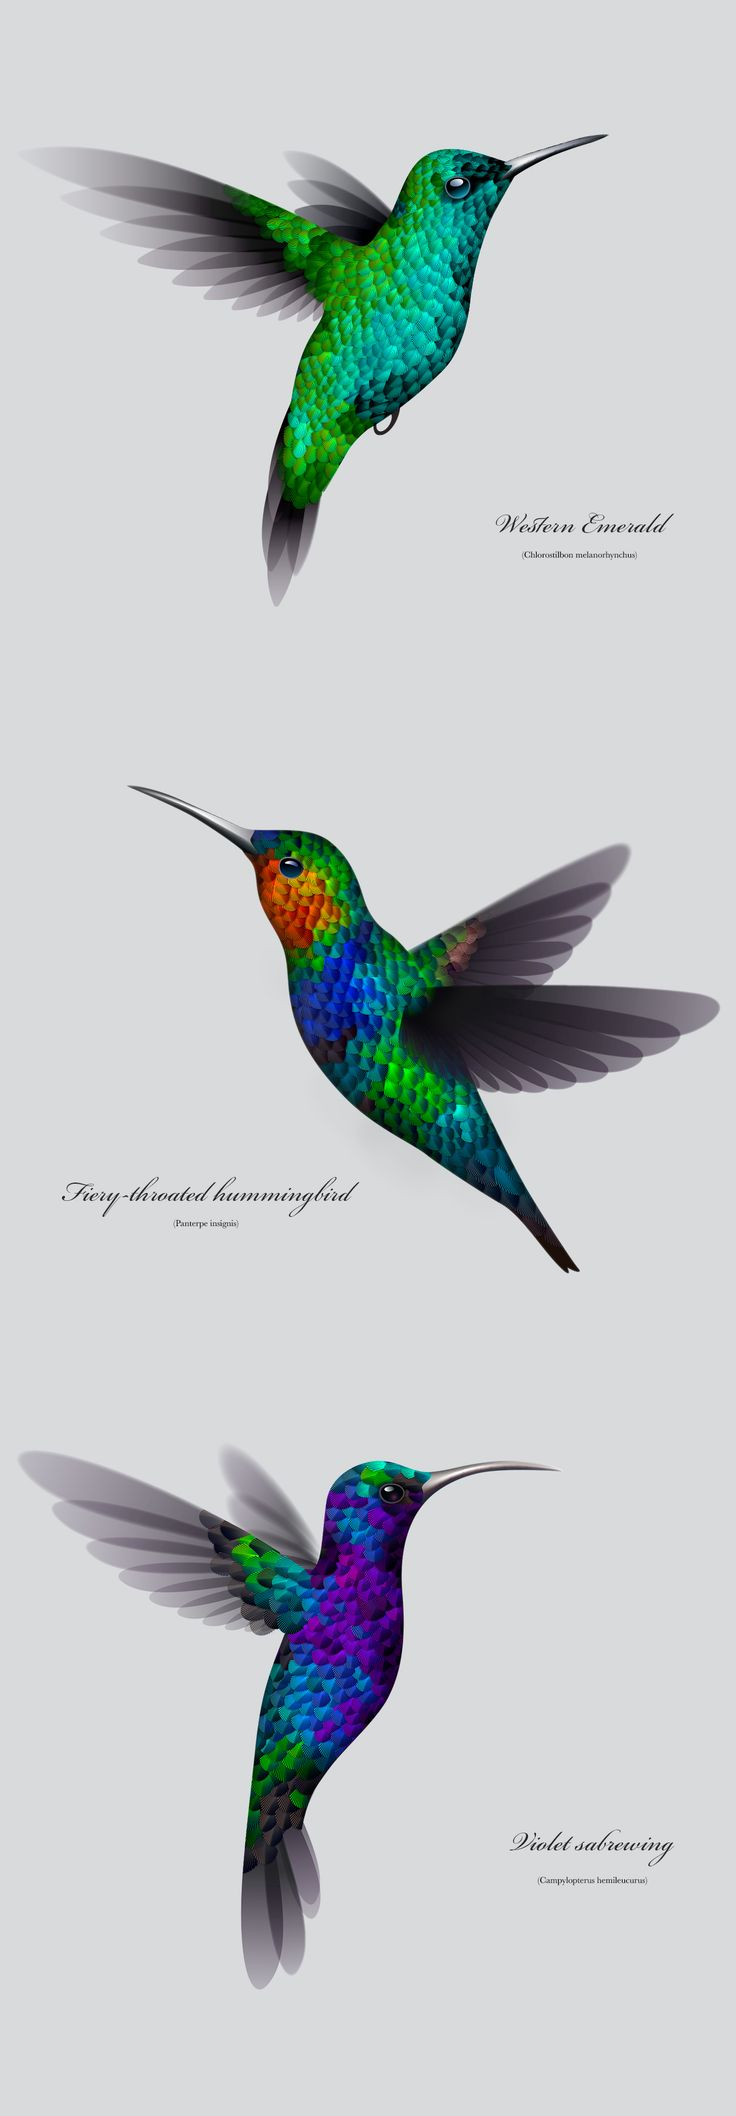 Best 25 Hummingbird Tattoo Ideas On Pinterest